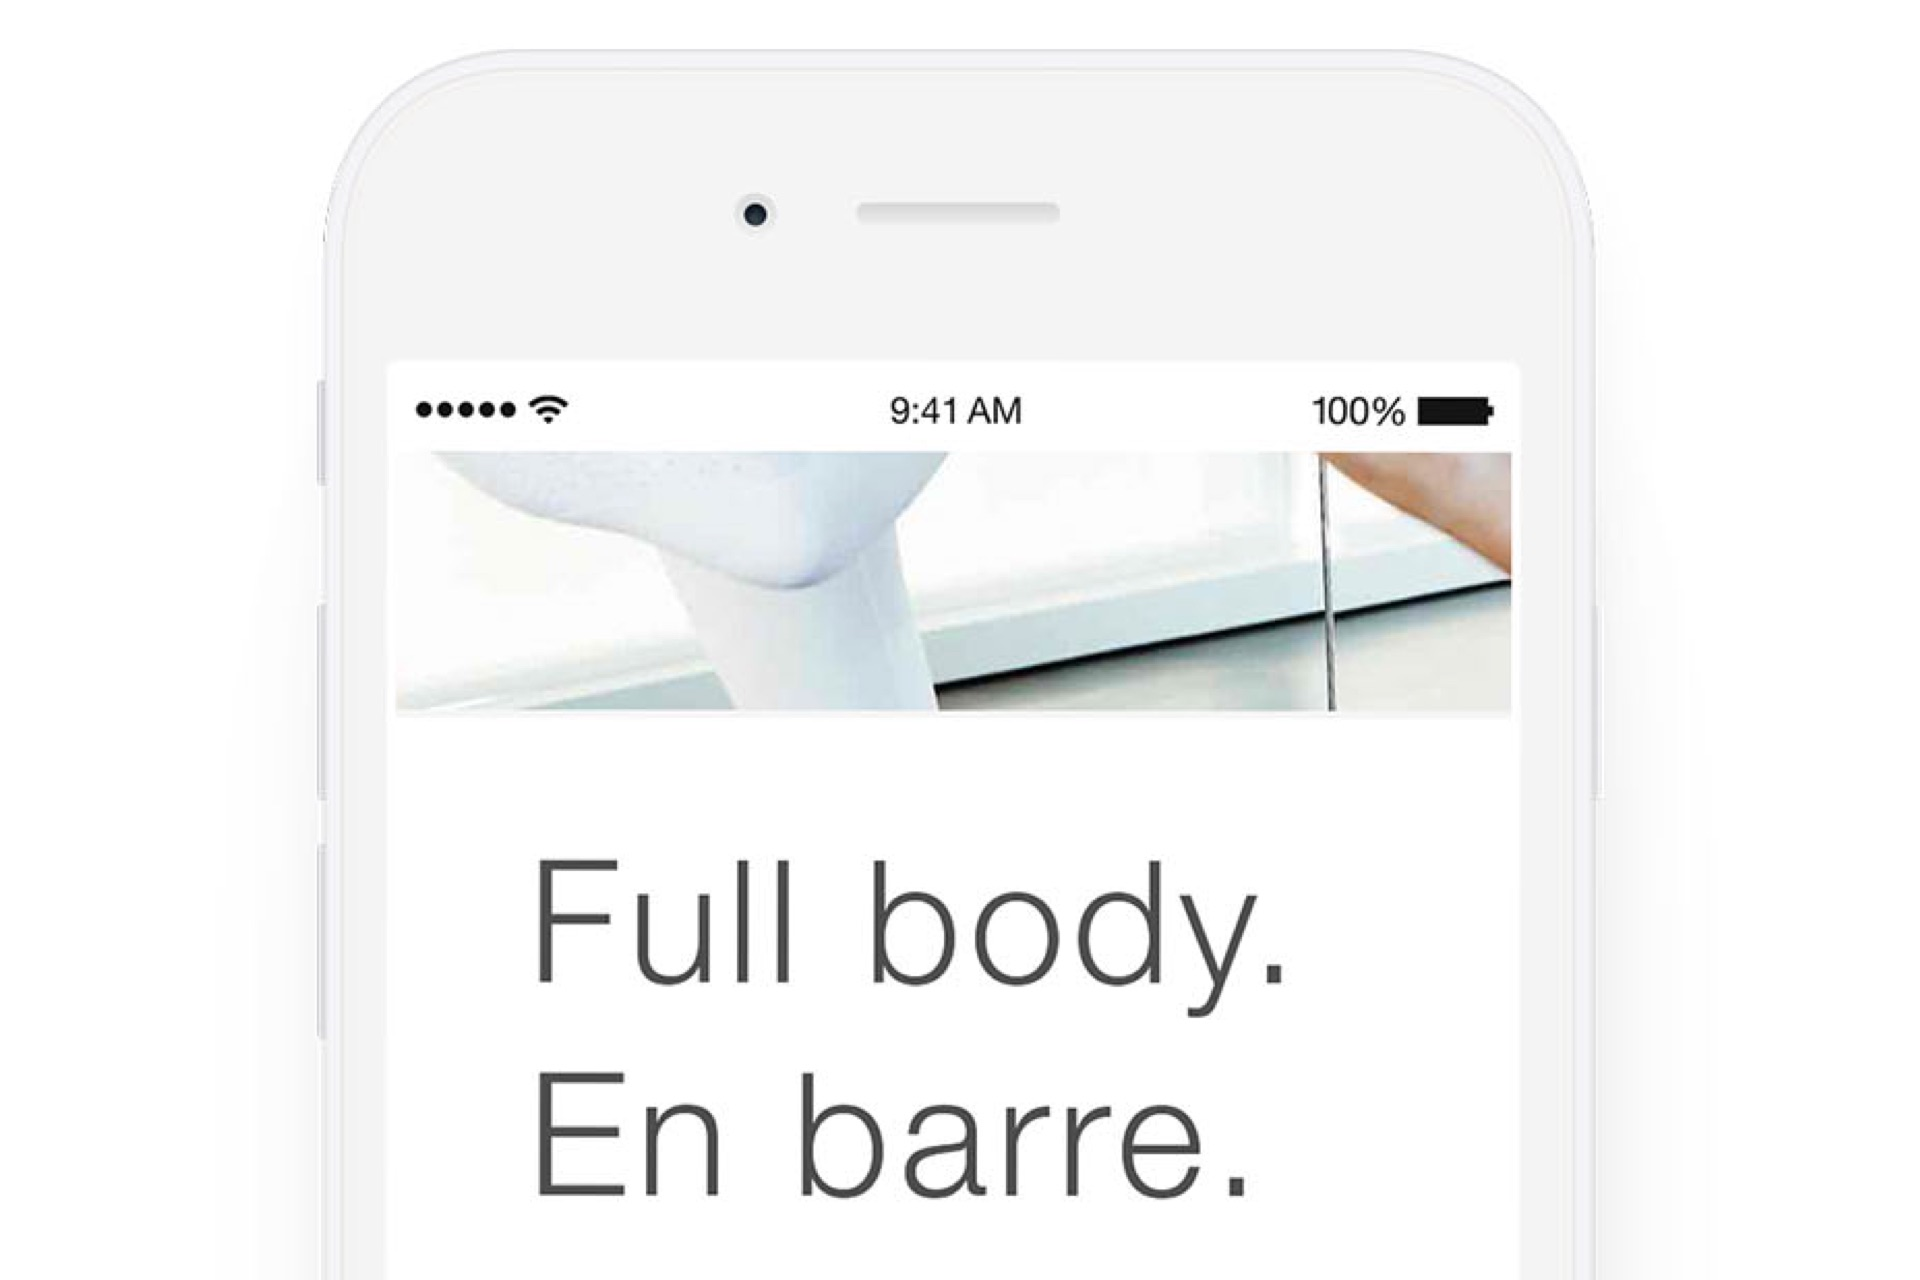 Example of type in Life Time branded content shown in an iPhone